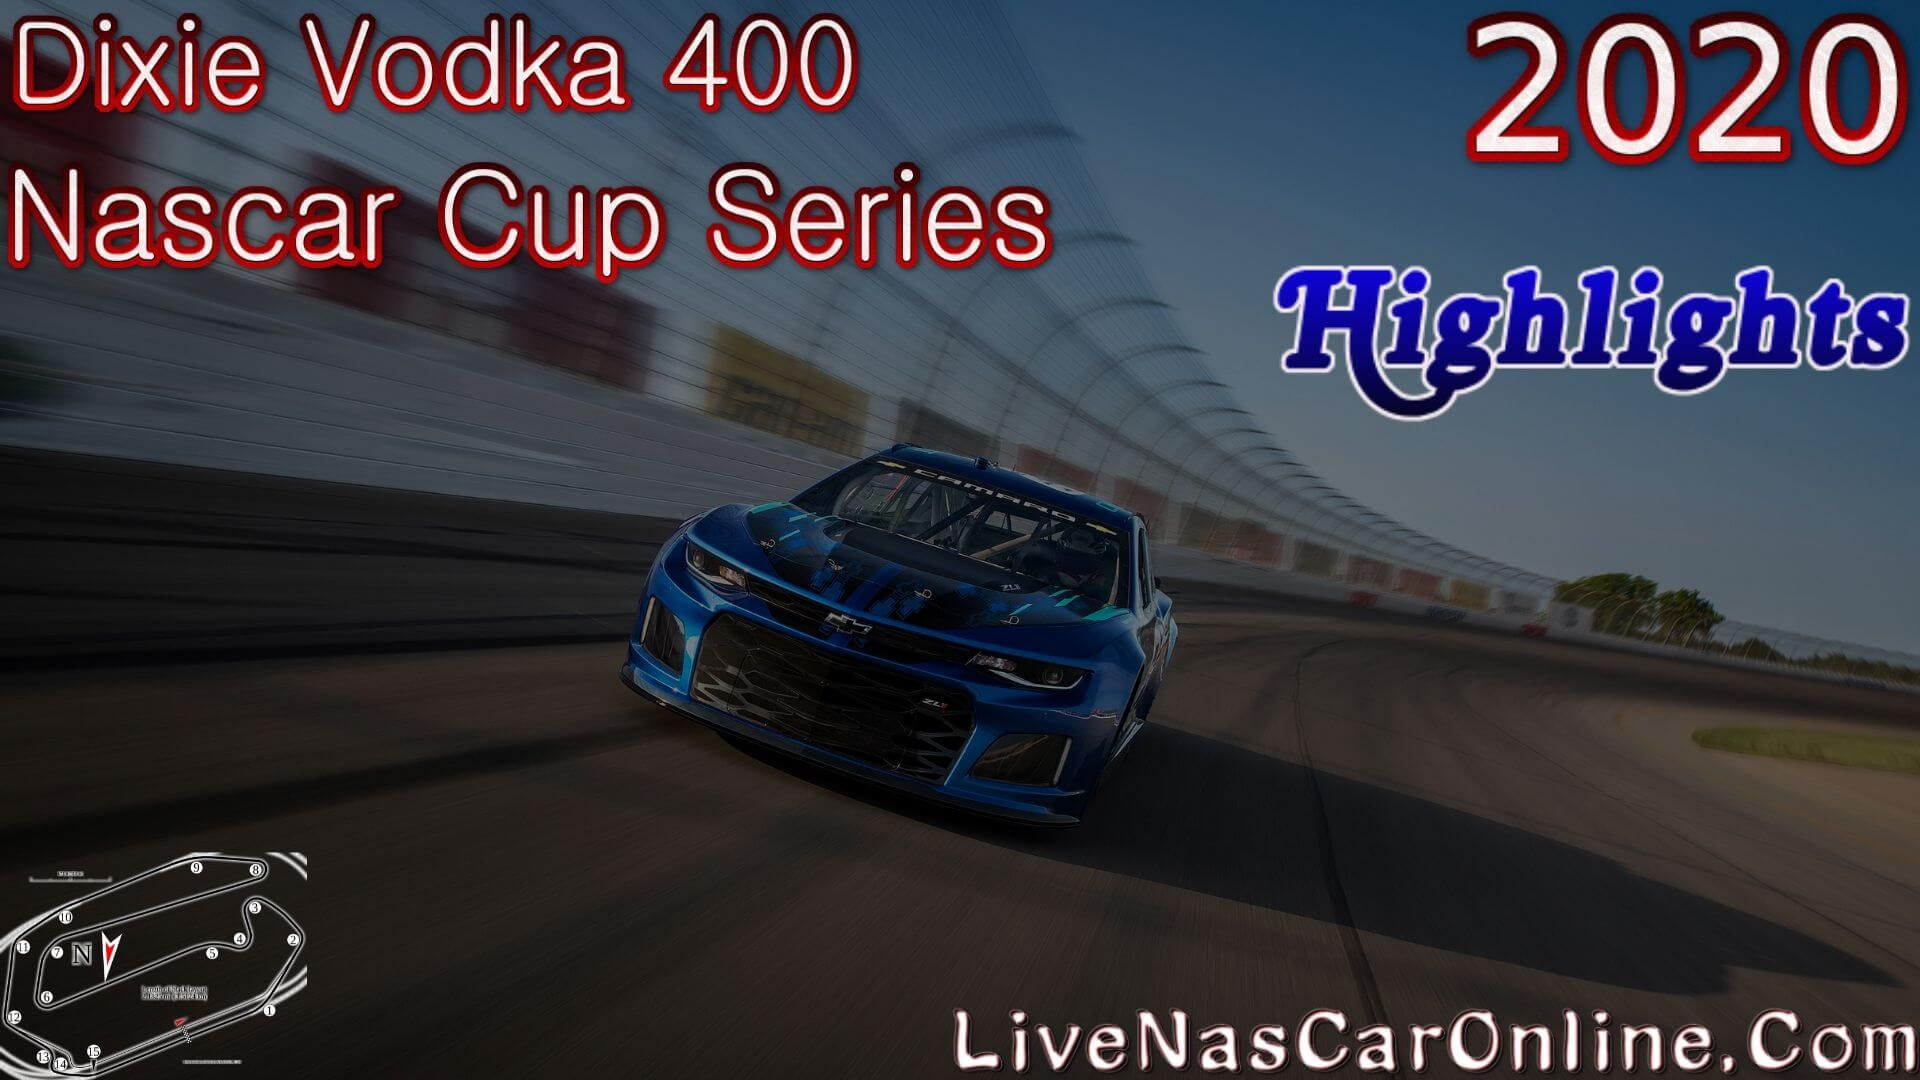 Dixie Vodka 400 Nascar Cup Highlights 2020